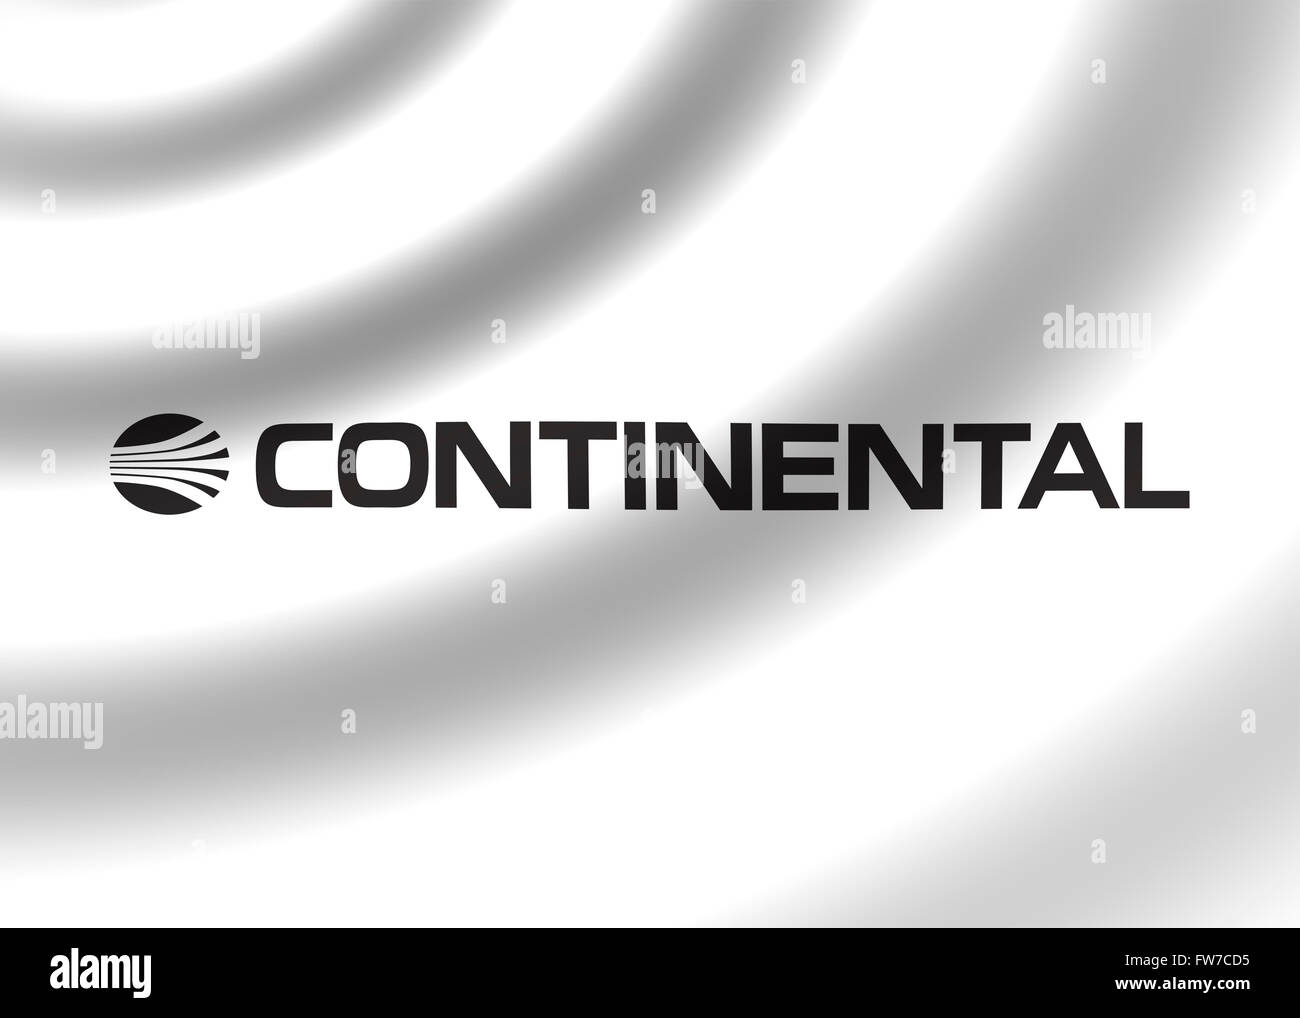 Continental Airlines logo - Stock Image